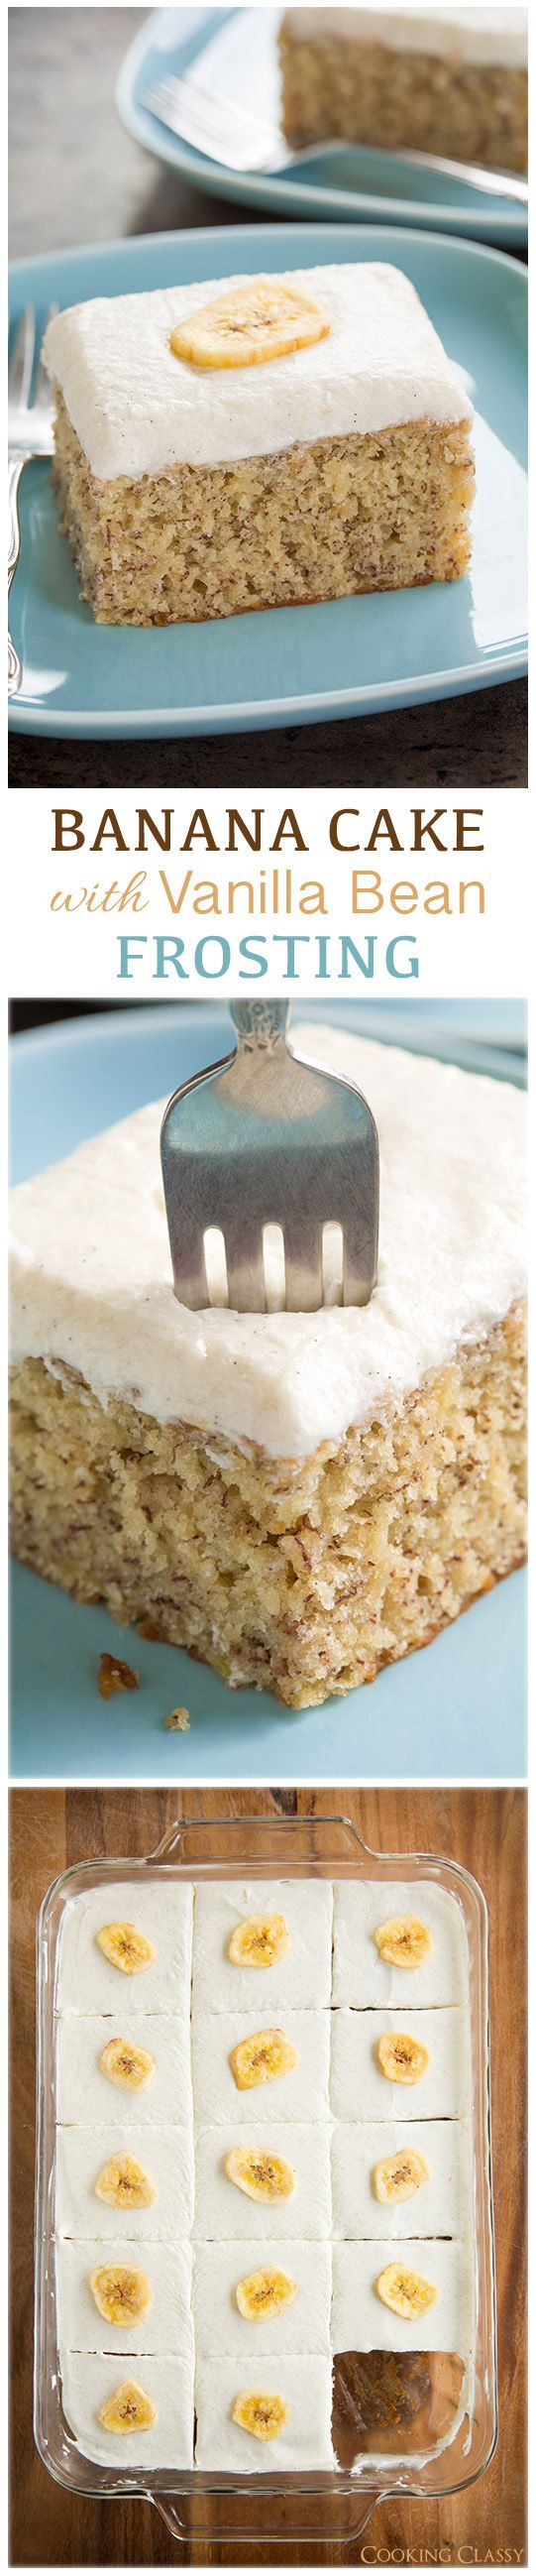 To Die For Banana Cake with Vanilla Bean Frosting - This cake is completely irresistible!! SO amazingly good!